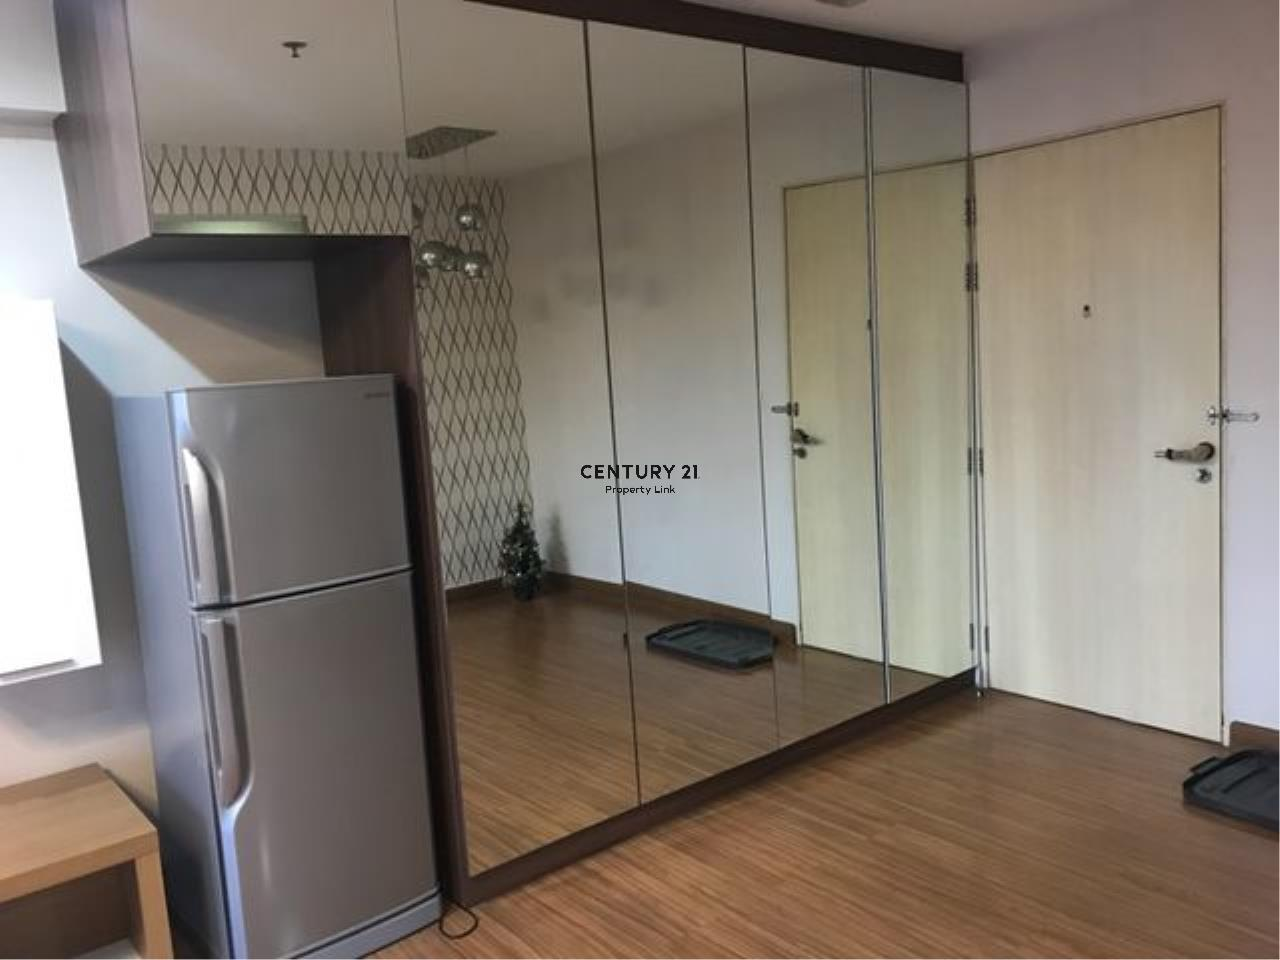 Century21 Property Link Agency's 39-CC-61511 My Resort Bangkok Room For Rent Phetchaburi Road Near MRT Phetchaburi 2 Bedroom 32,500 THB./ month 2